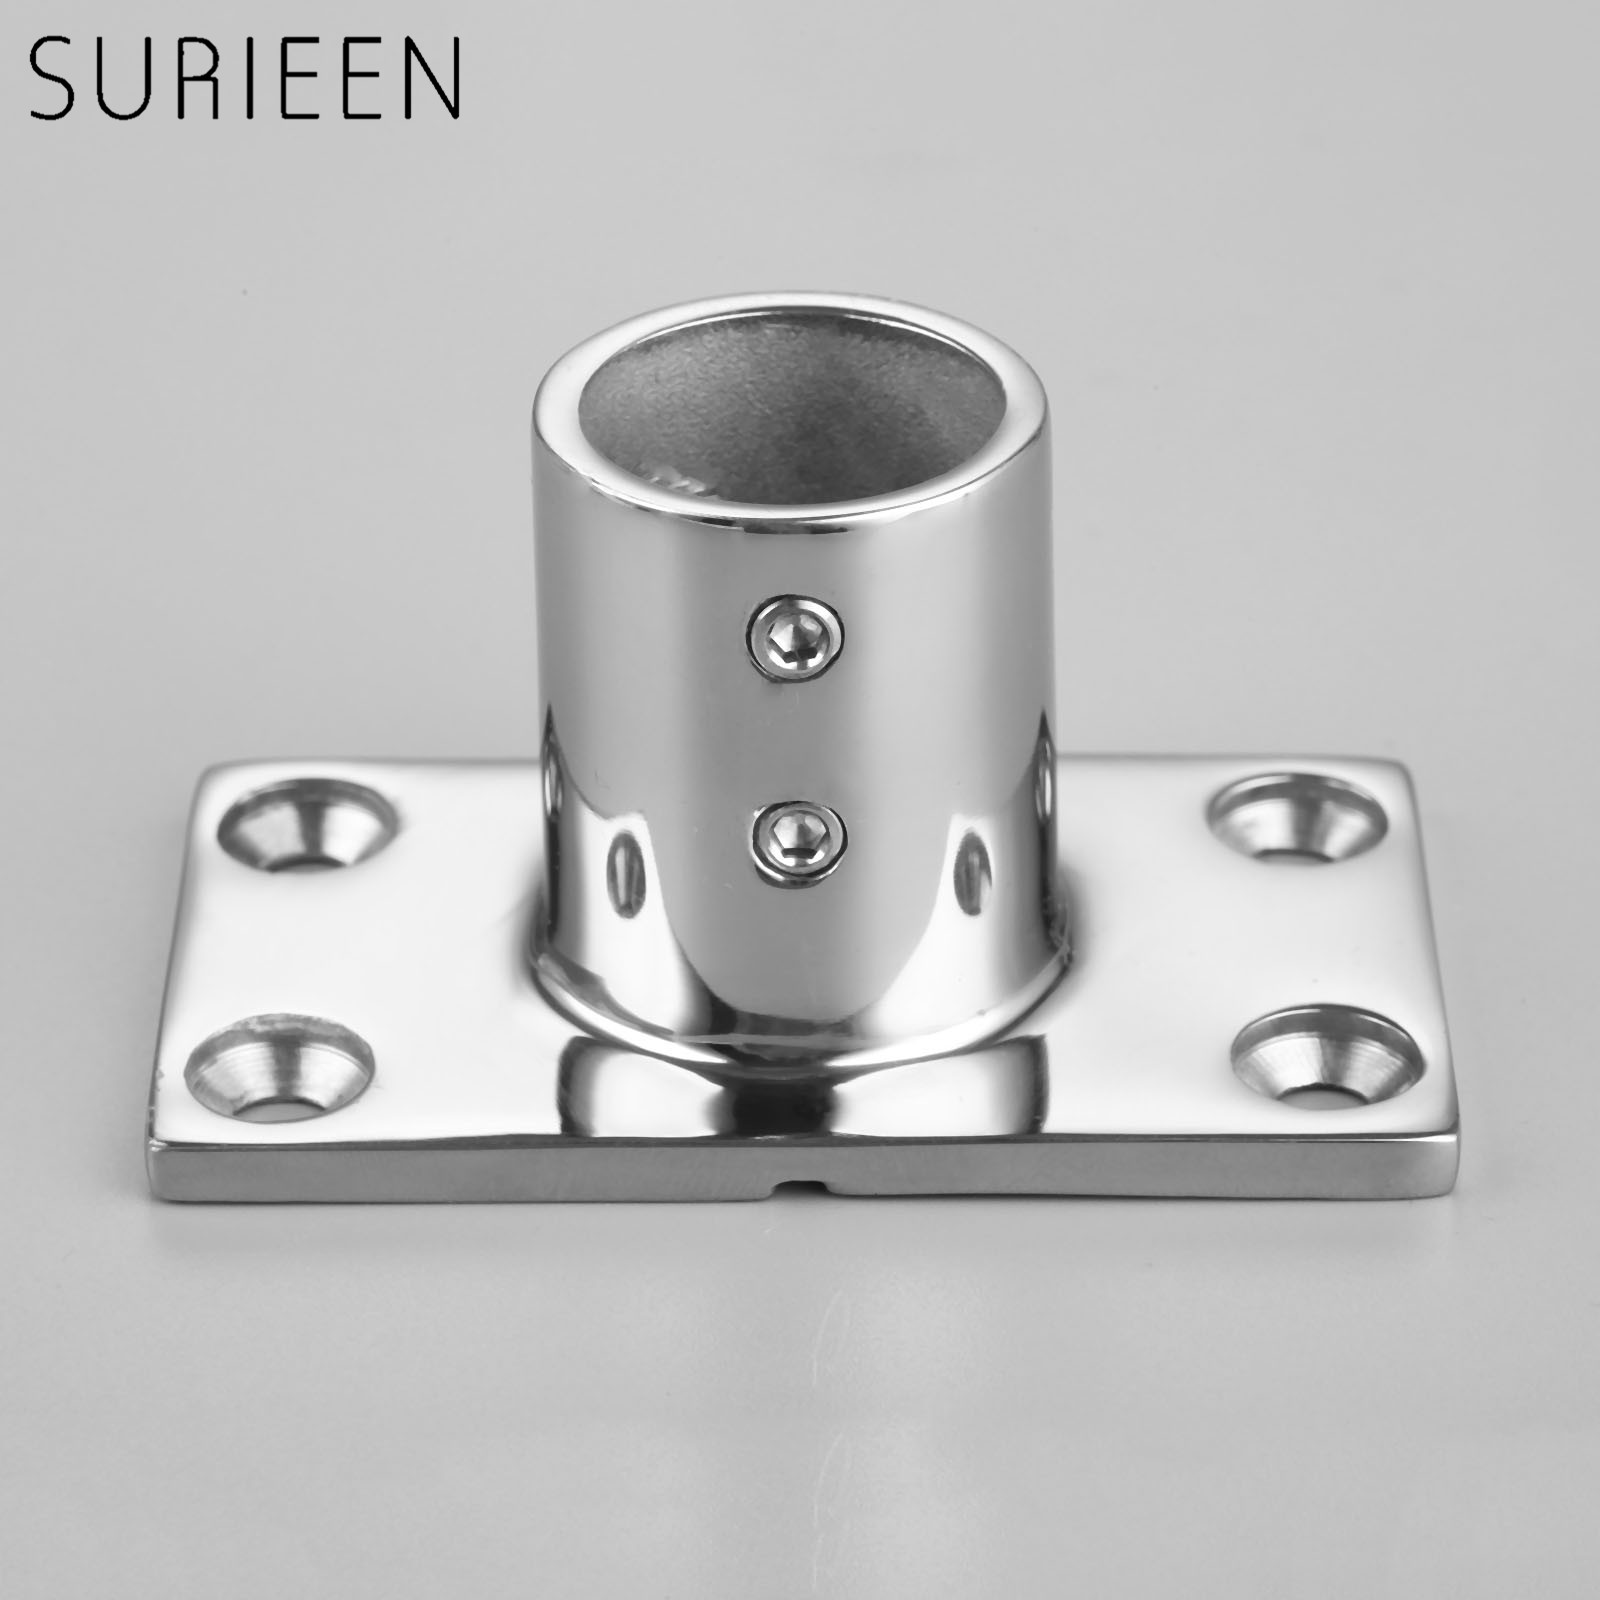 """1pc Fit Boat Hand Rail Fitting-90 Degree 1"""" 25mm Tube / Pipe Rectangular Base Marine Stainless Steel Boat Accessories Marine"""